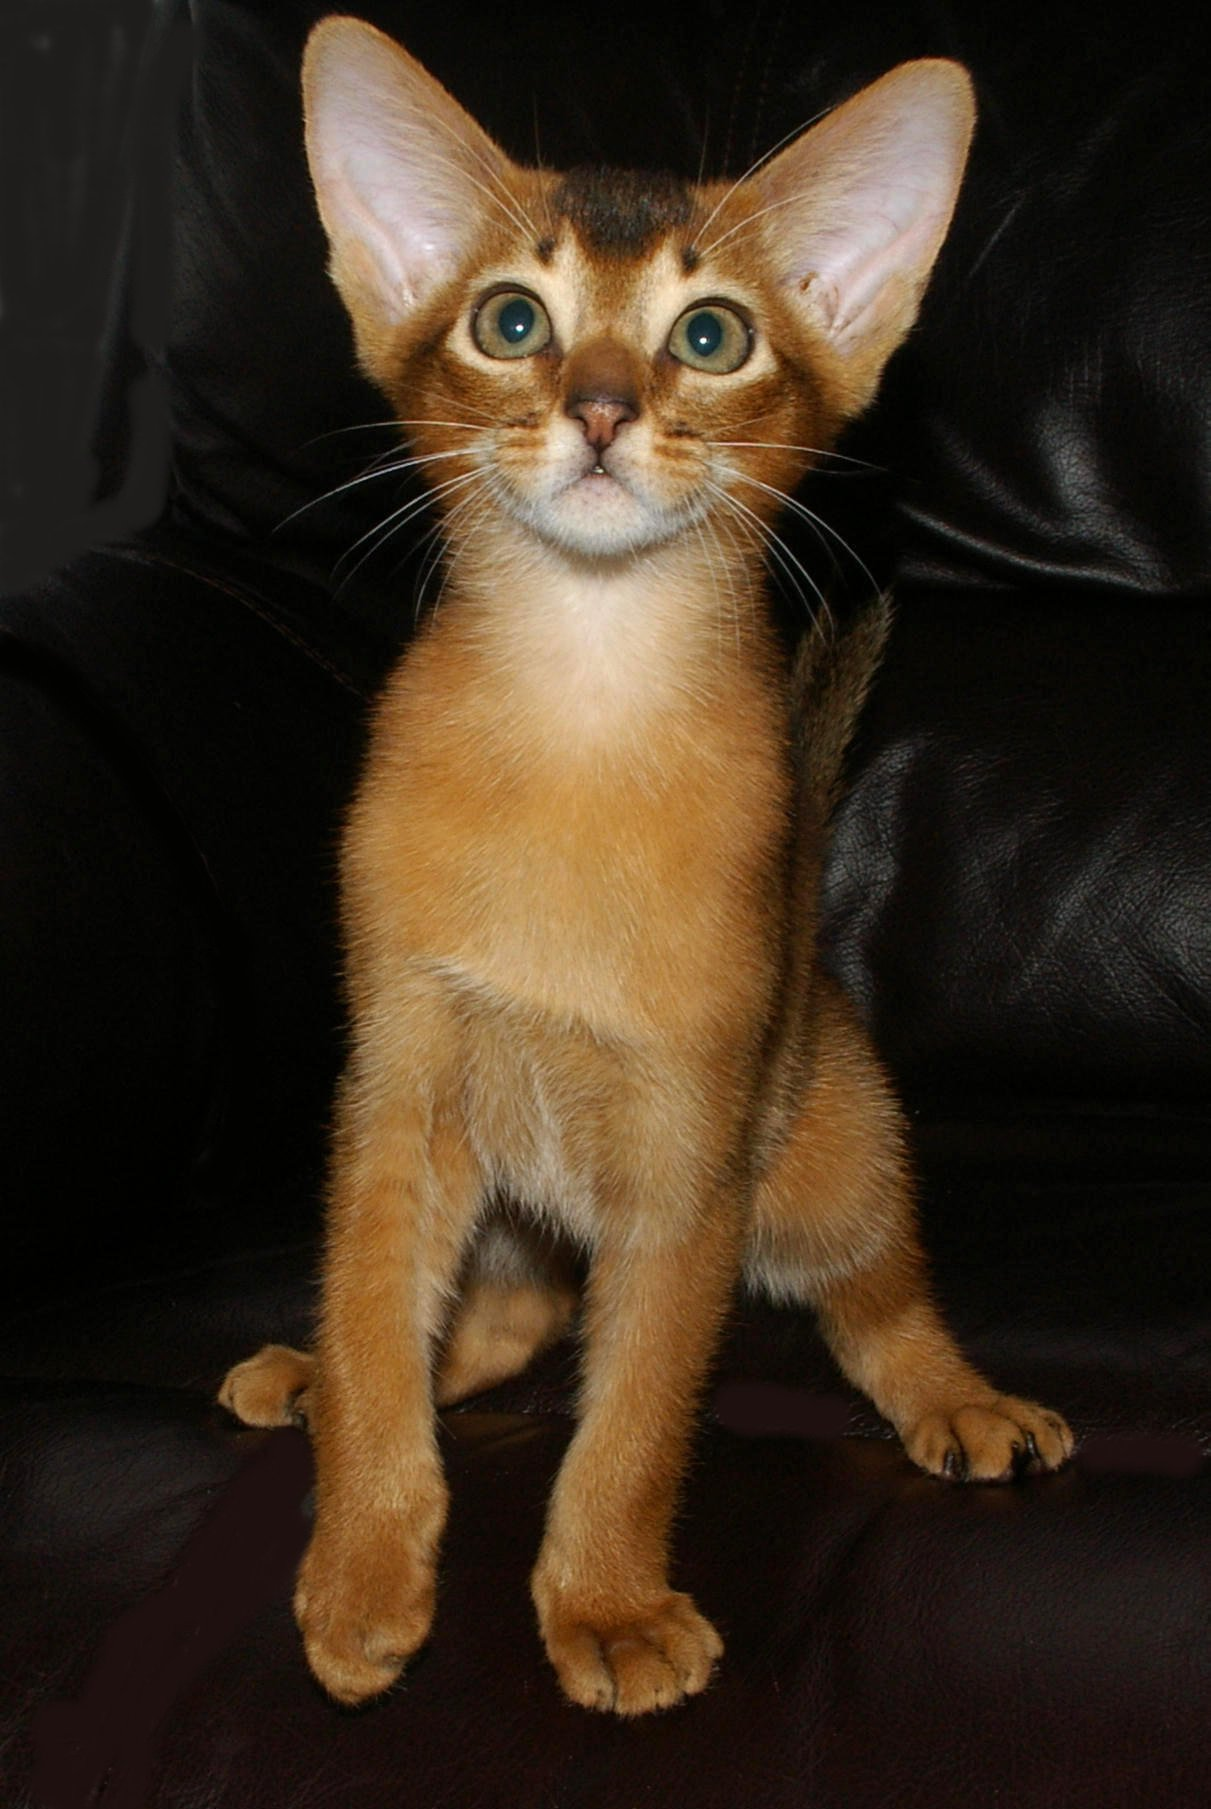 Tawny Kitten from Merindalee gallery image